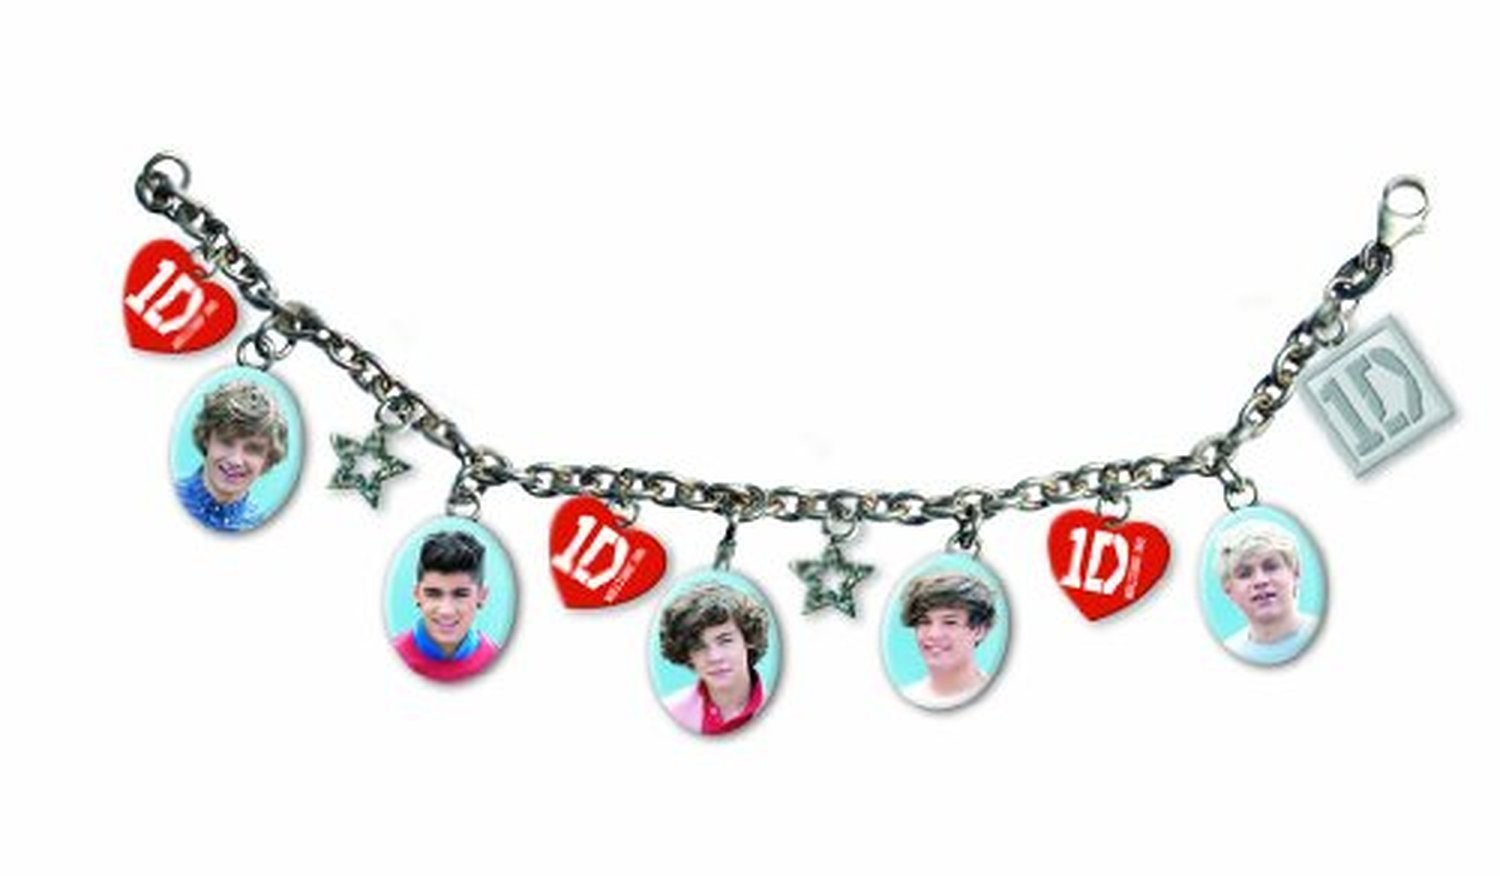 1D One Direction Silver Stars Charm Bracelet Red Hearts Band Photos Official